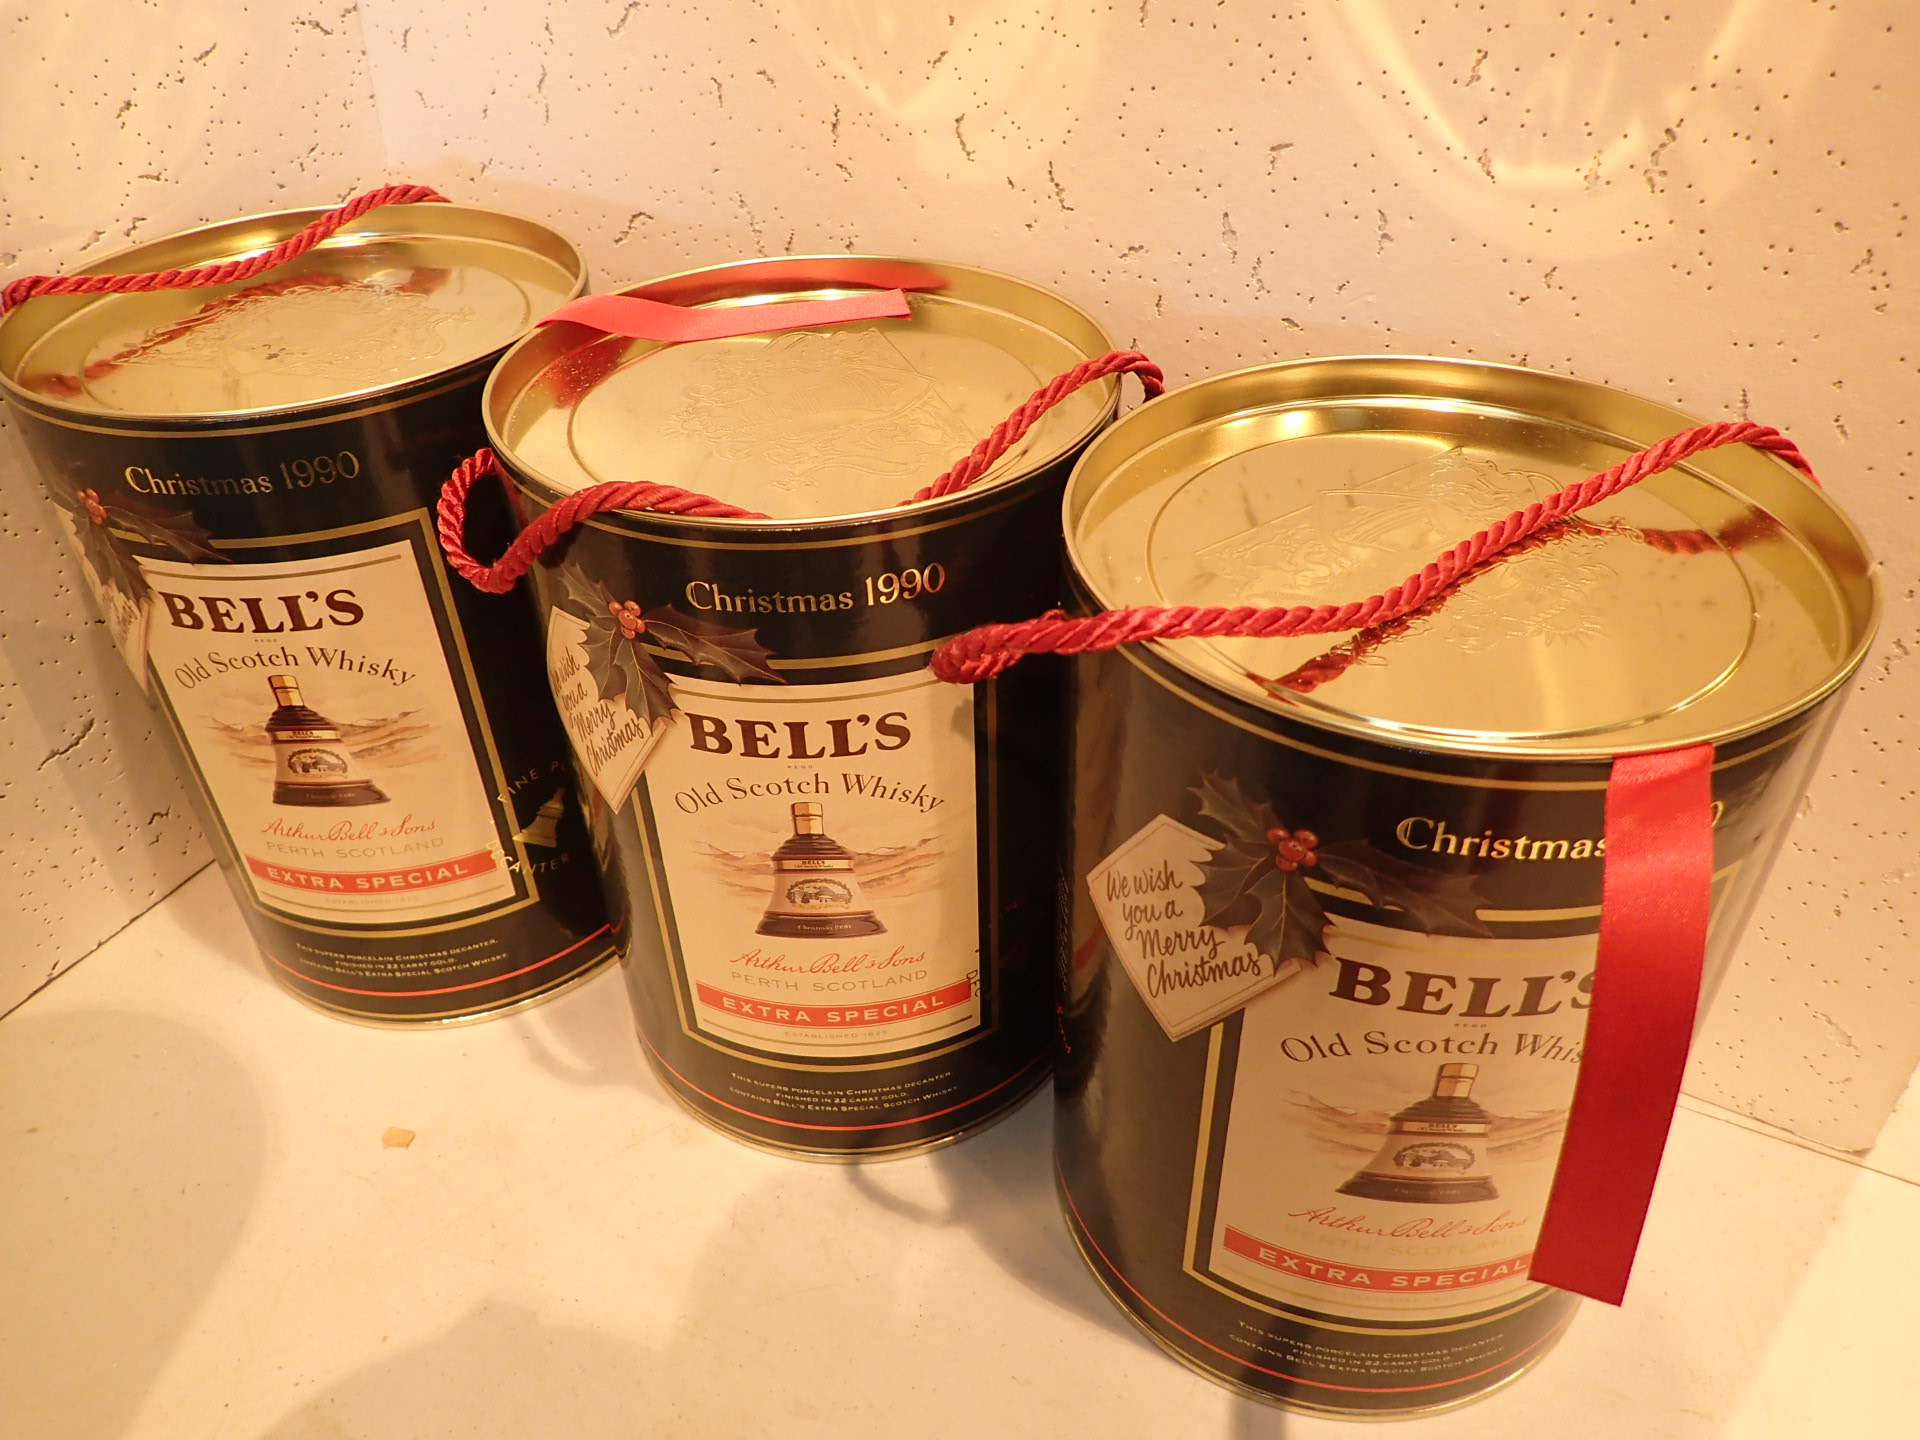 Lot 530 - Three Bells whisky decanters Christmas 1